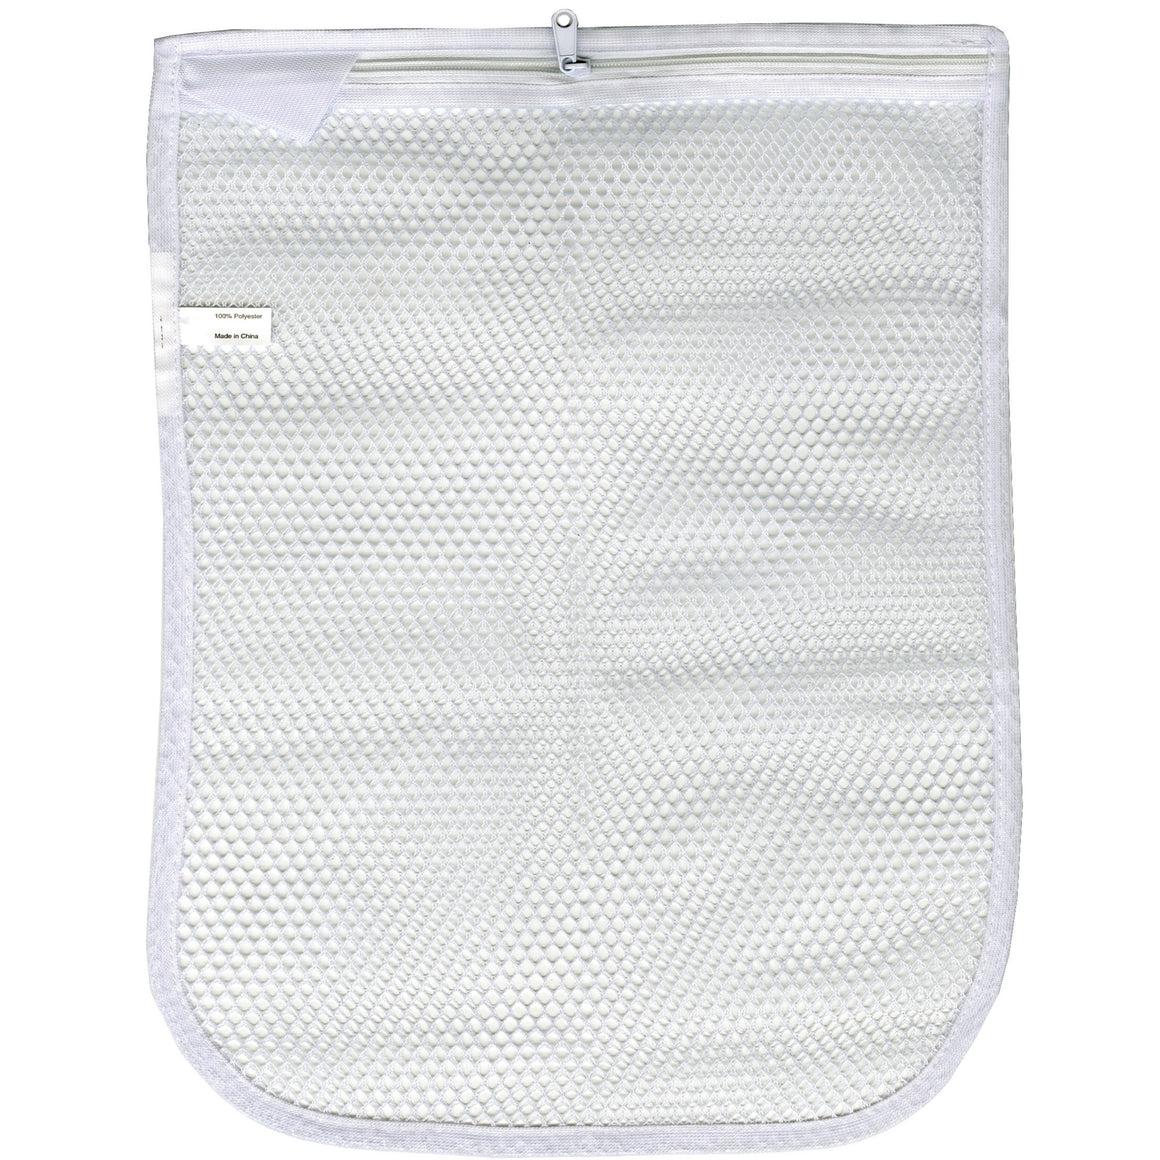 Laundry Bag - Brilliant for Keeping Your Microfiber Cloths Together in the Wash